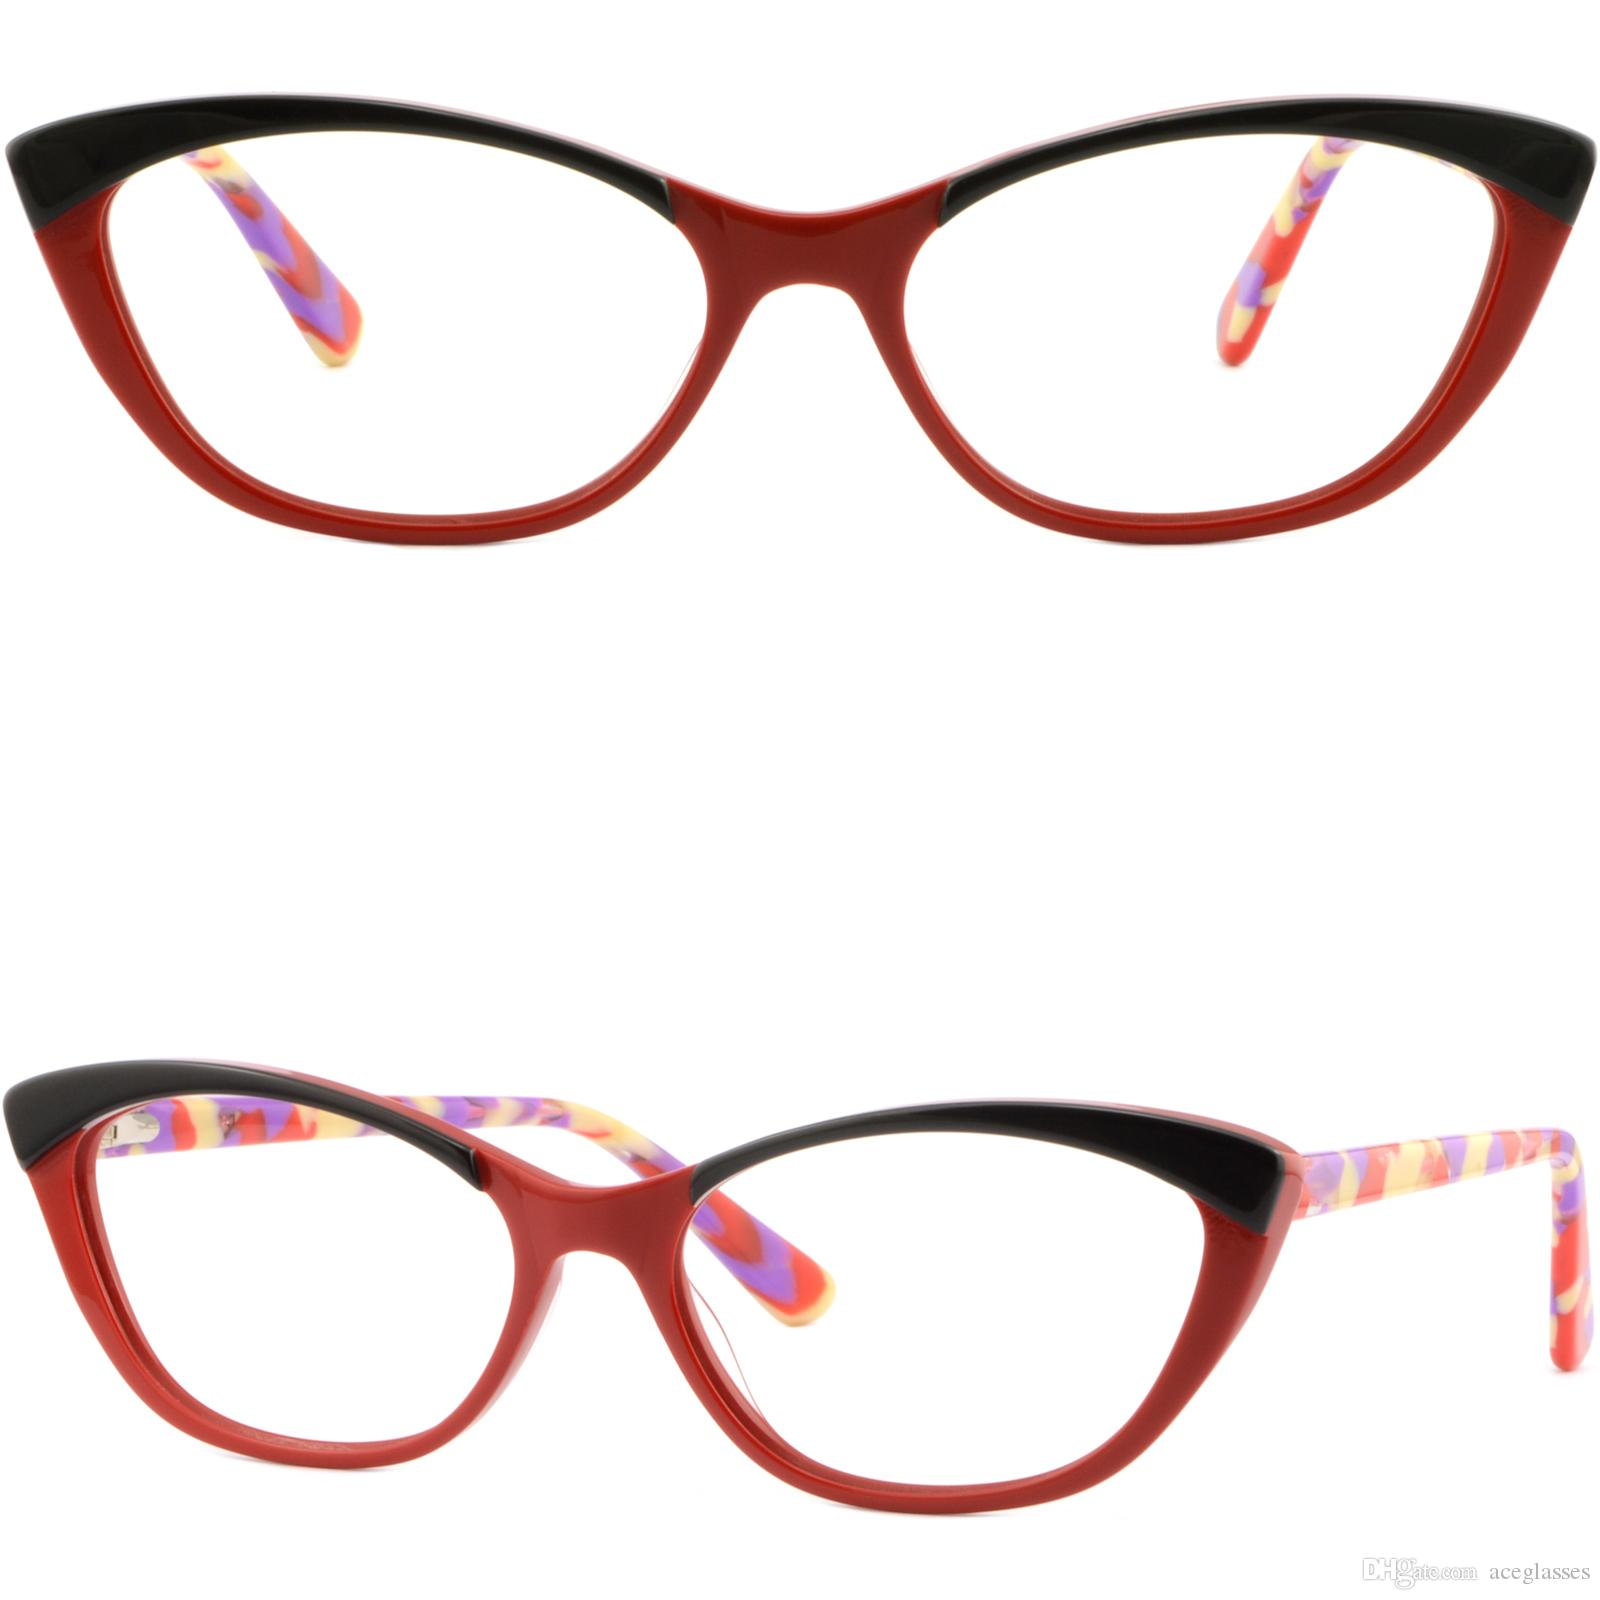 630ef3d48e Light Acetate Women Cat Eye Frame Stylish Prescription Glasses Spring  Hinges Red Cheap Frames Glasses Choosing Eyeglass Frames From Aceglasses